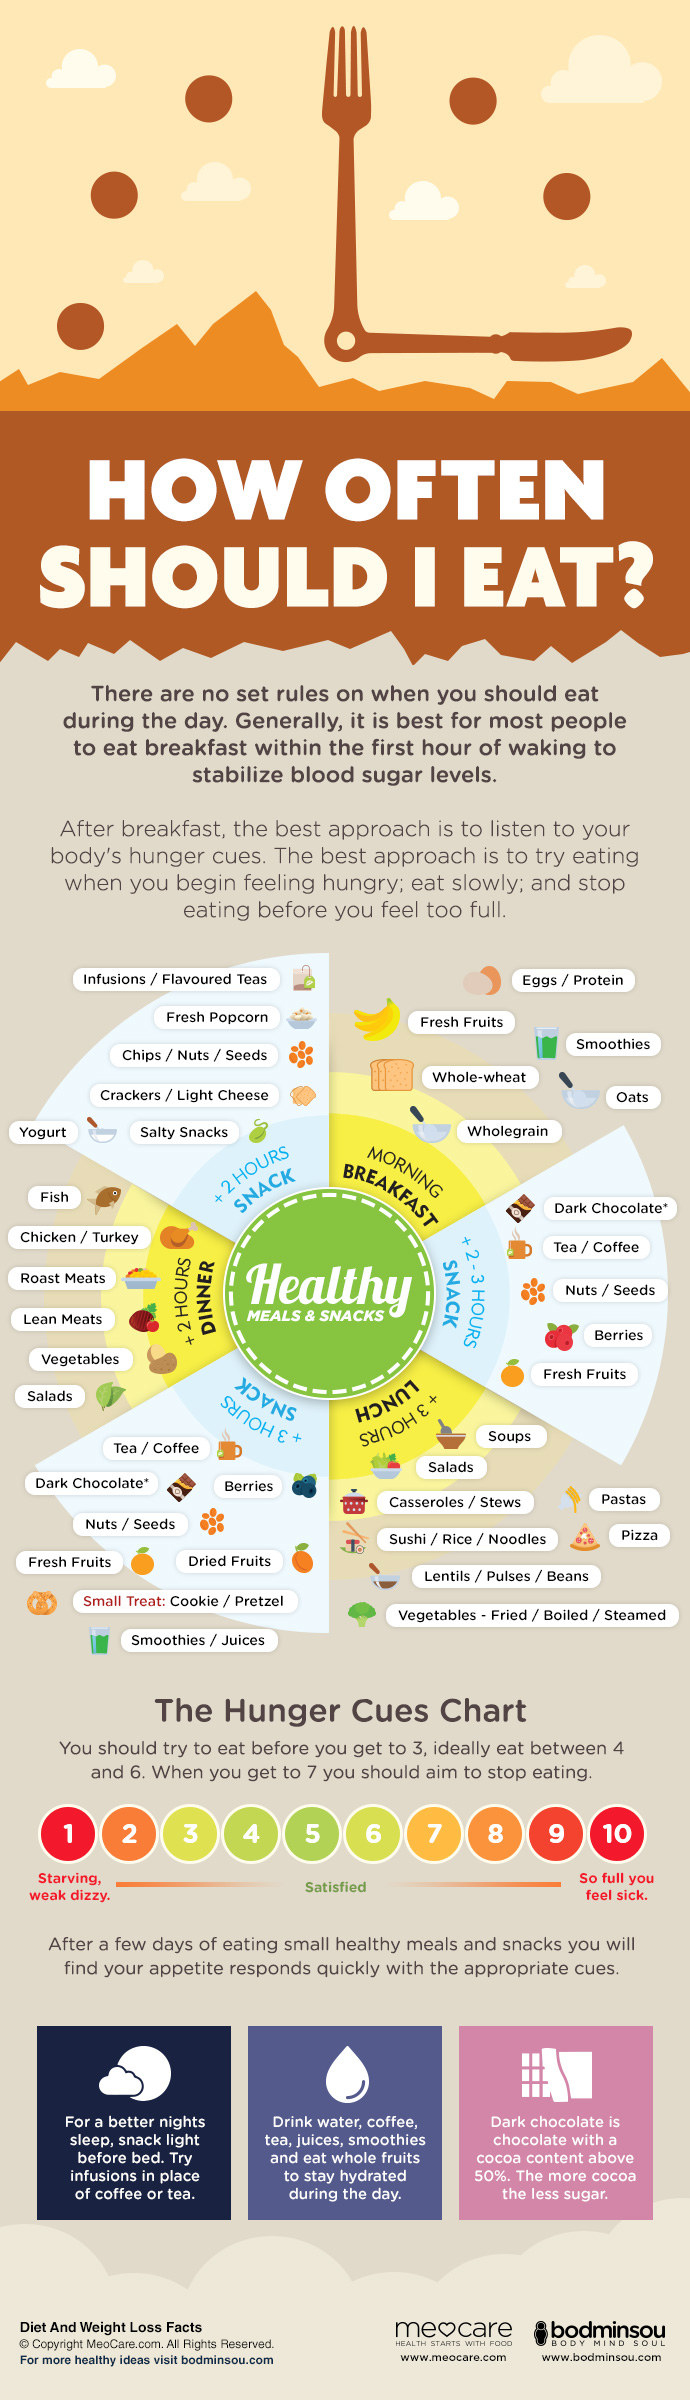 Of course everyone's appetite is different, but these suggestions can be so helpful for anyone who's trying to put some more thought and planning into the way they eat throughout the day.